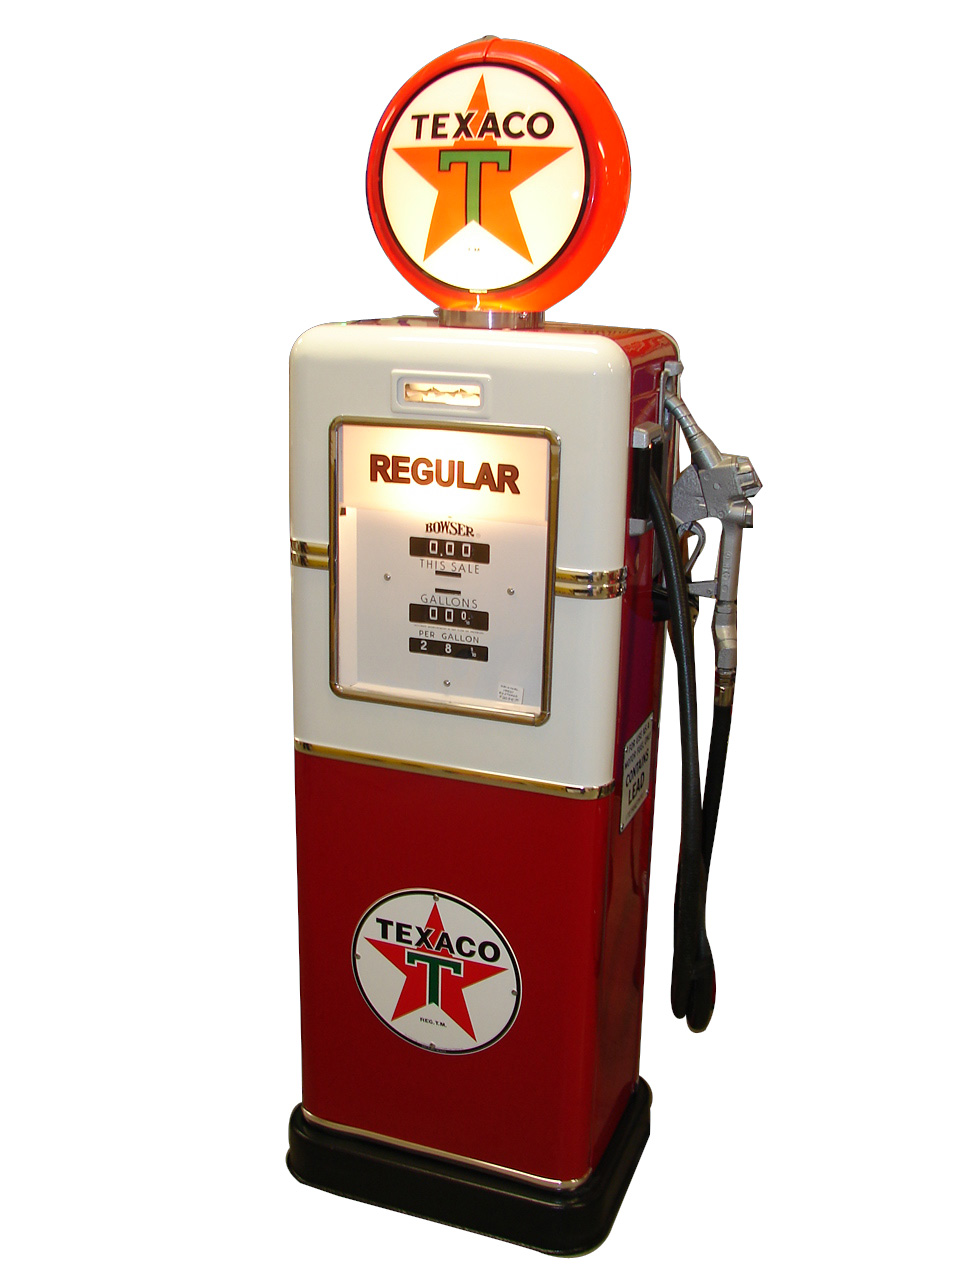 stupendous 1958 texaco oil bowser model 521 restored